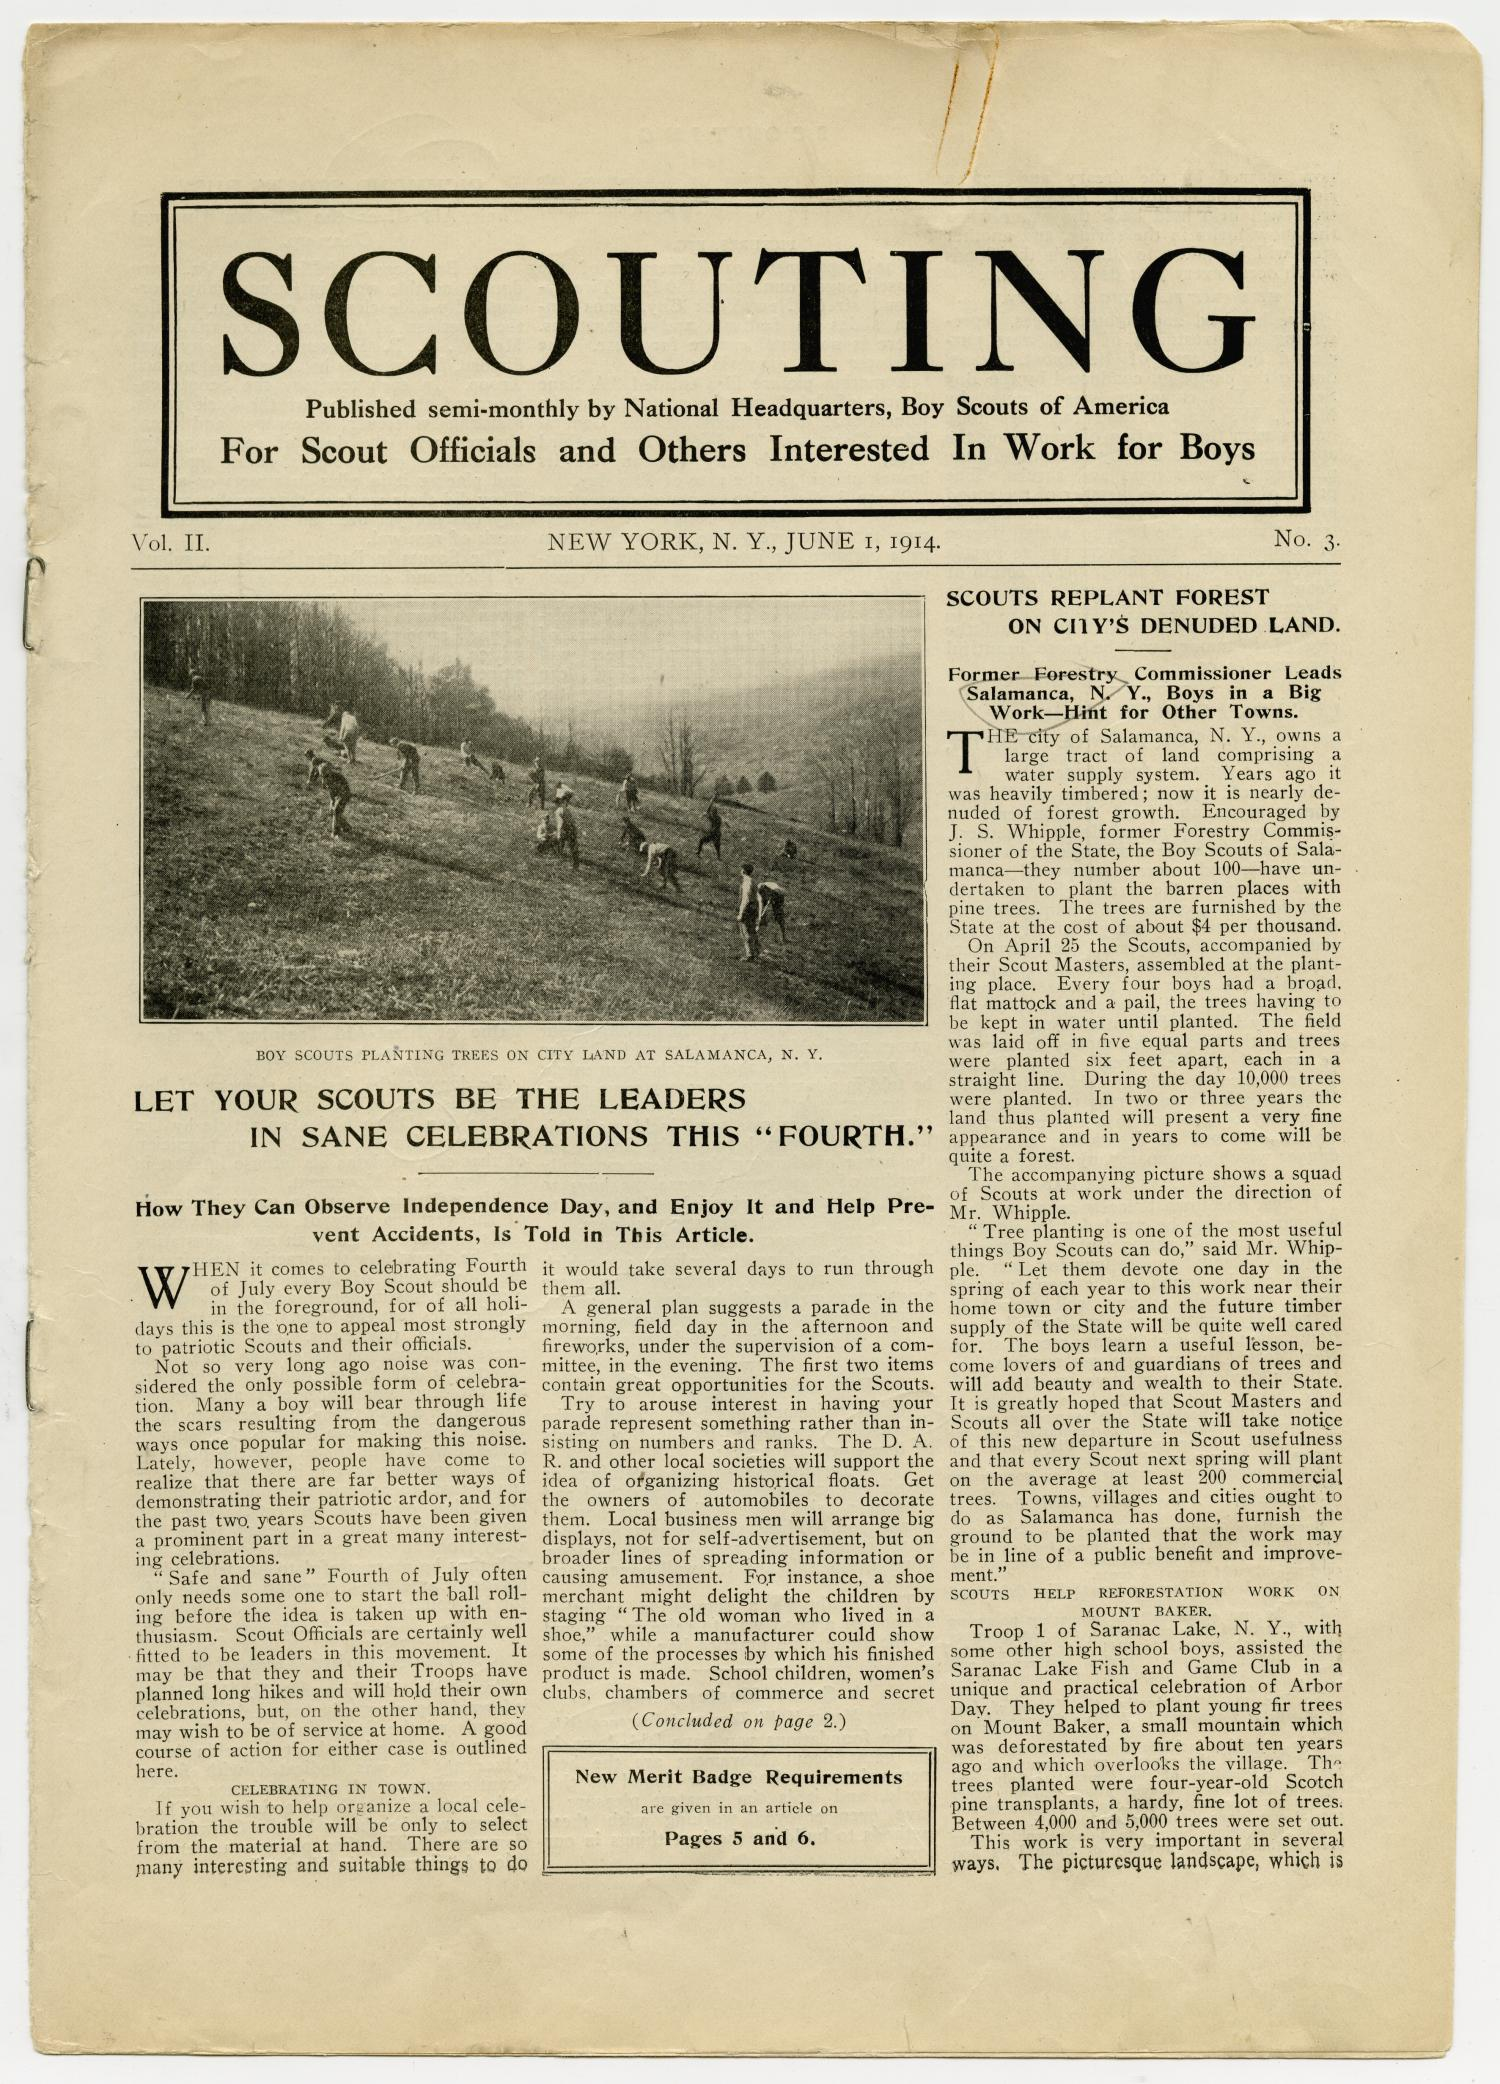 Scouting, Volume 2, Number 3, June 1, 1914                                                                                                      1